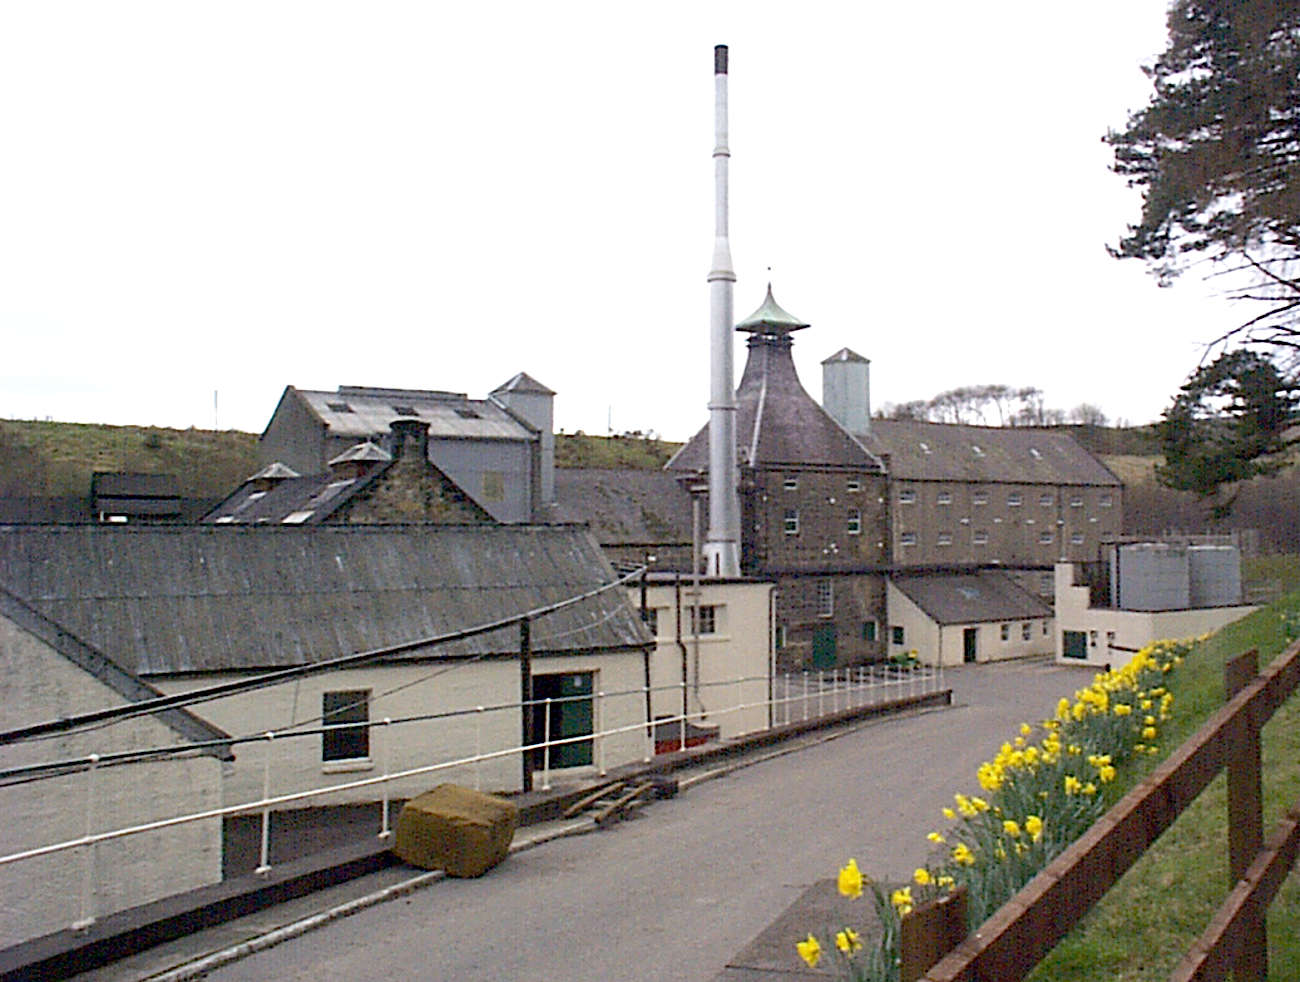 Speyburn view from the street uploaded by Ben, 22. Apr 2015